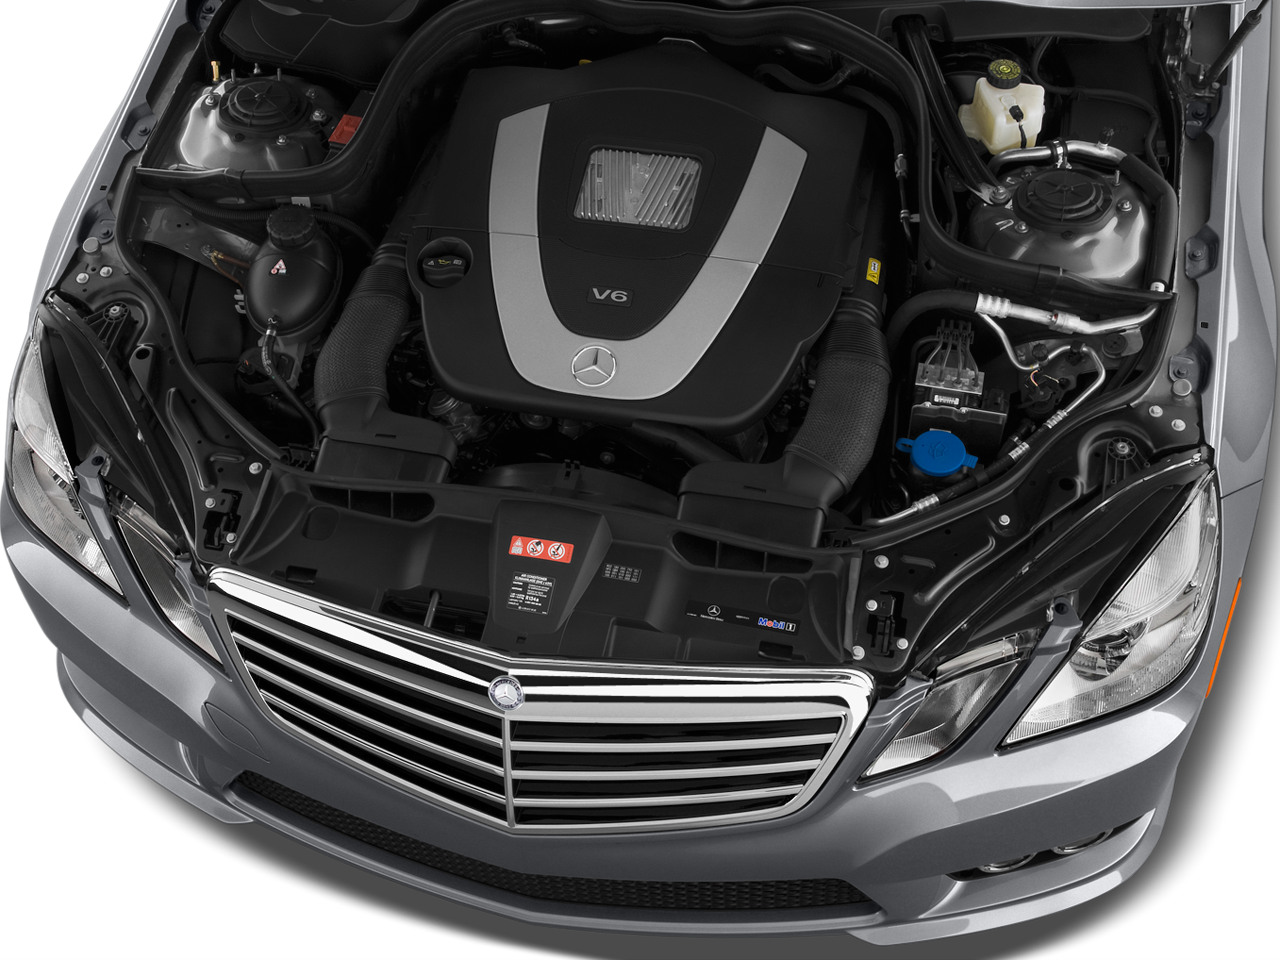 Mercedes benz e class expert review advantages for Engine for mercedes benz